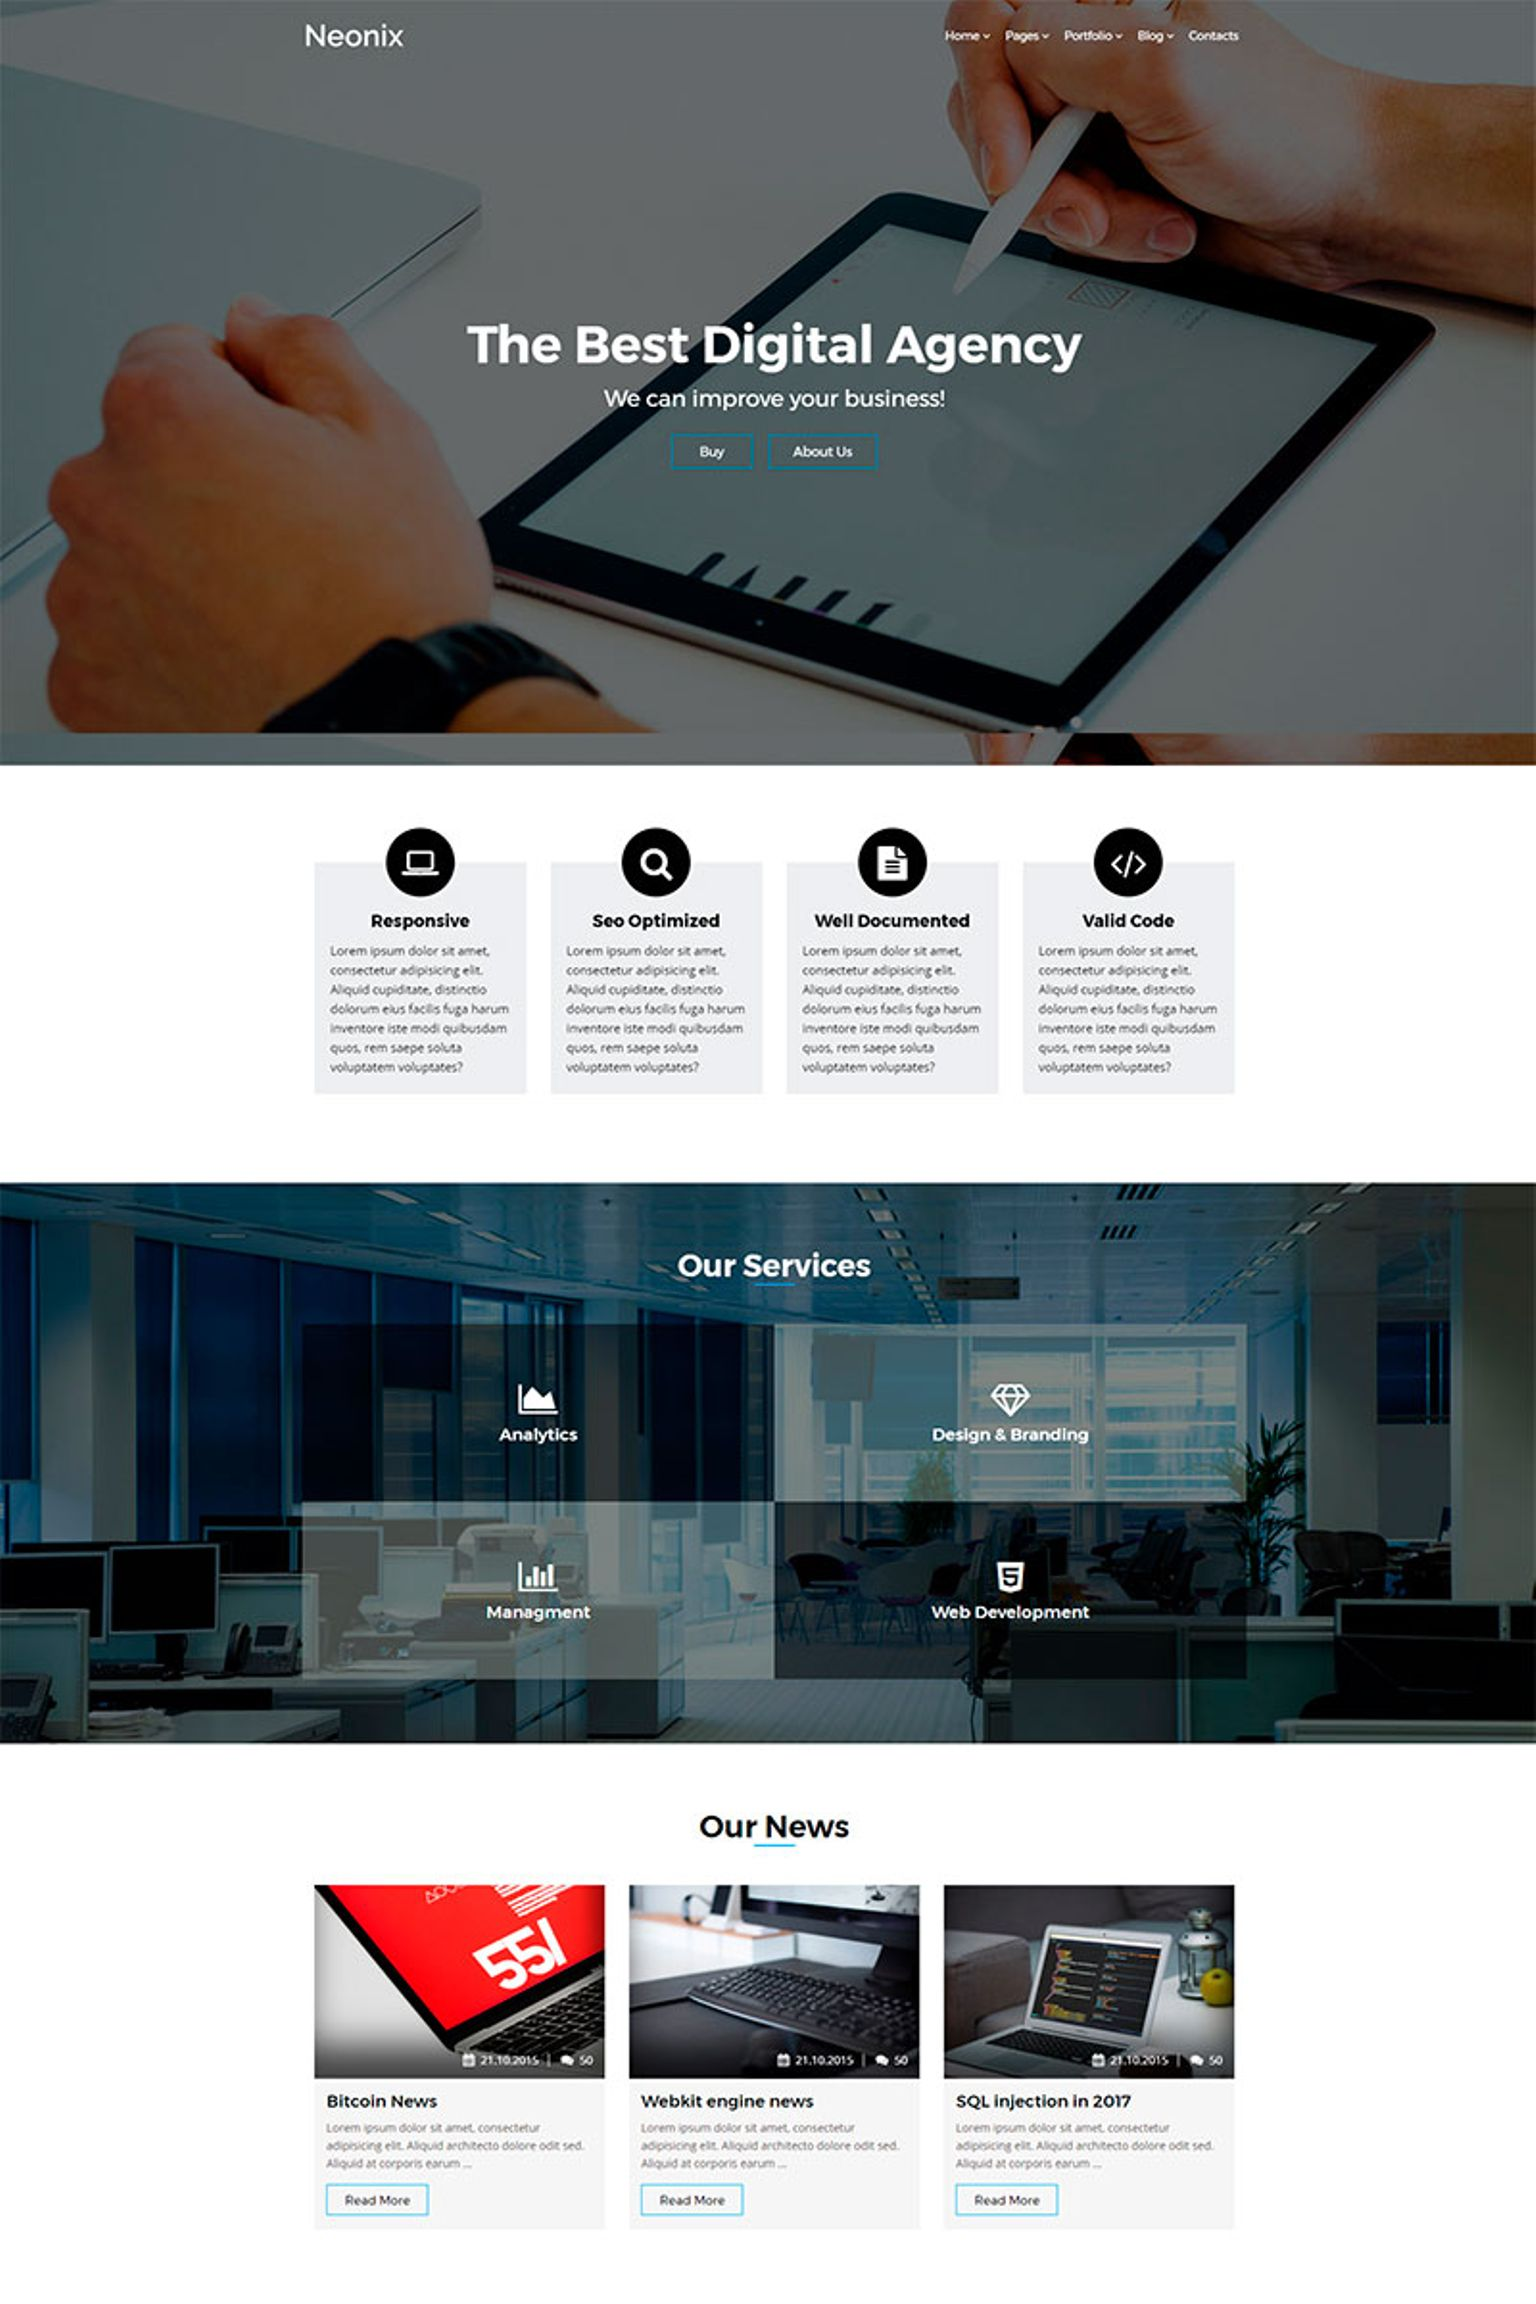 Neonix - Digital Agency WordPress Theme - screenshot